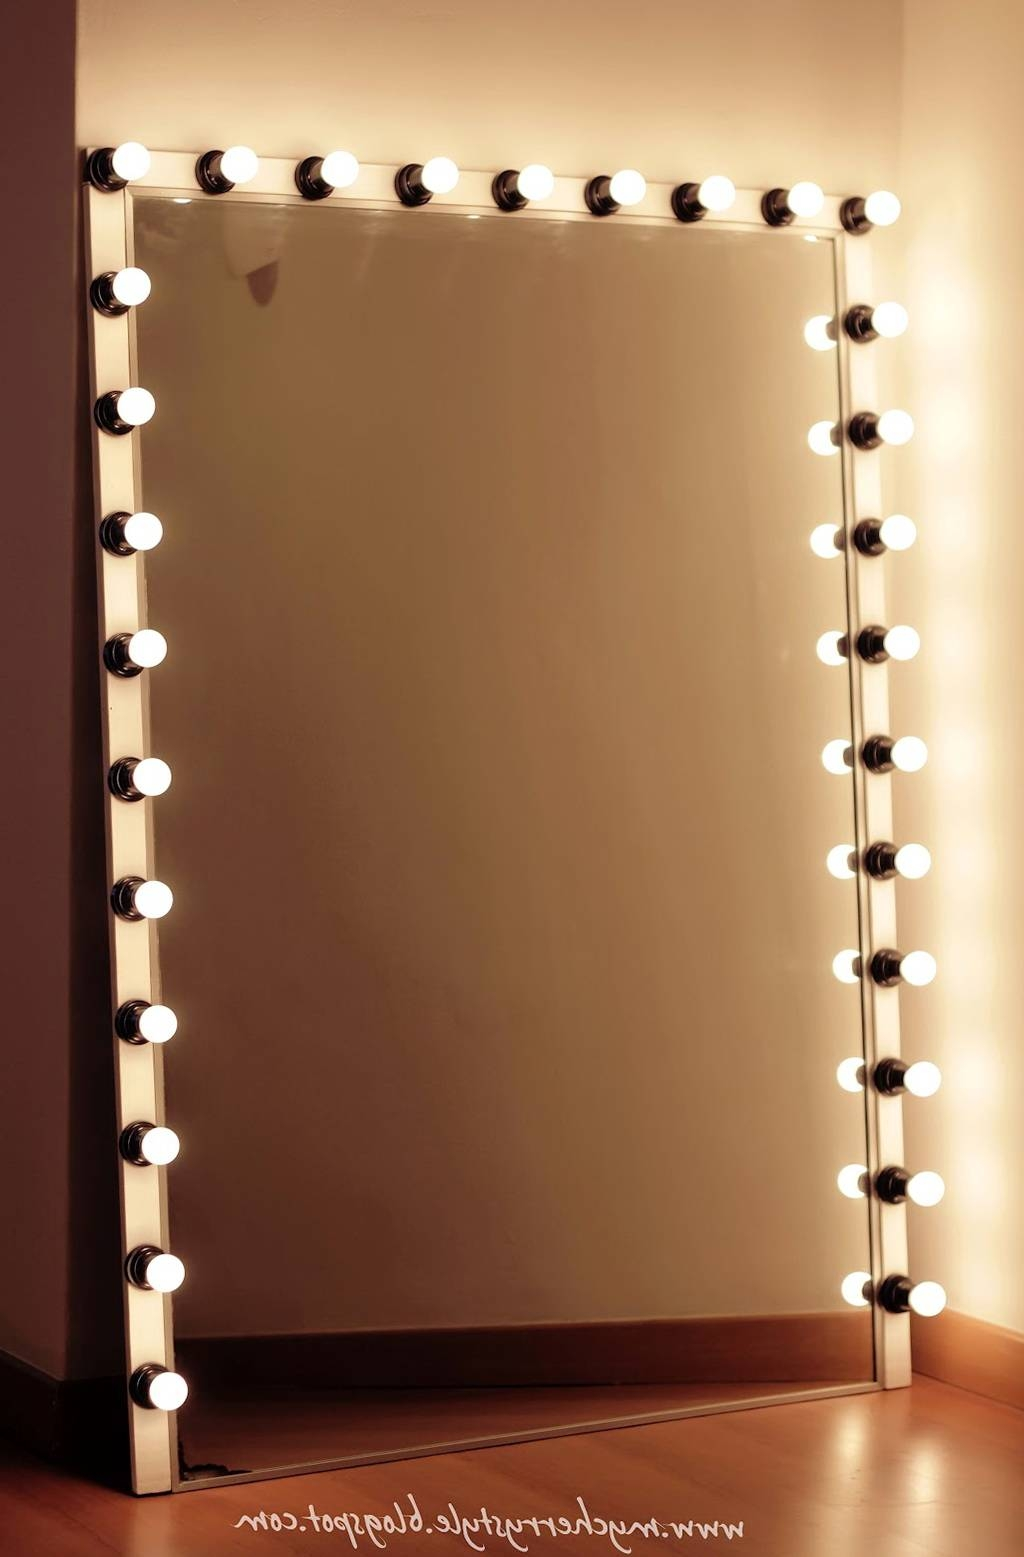 Imposing Dressing Room Bulb Around Makeup Mirrors Lights Long Free throughout Long Dressing Mirrors (Image 10 of 15)